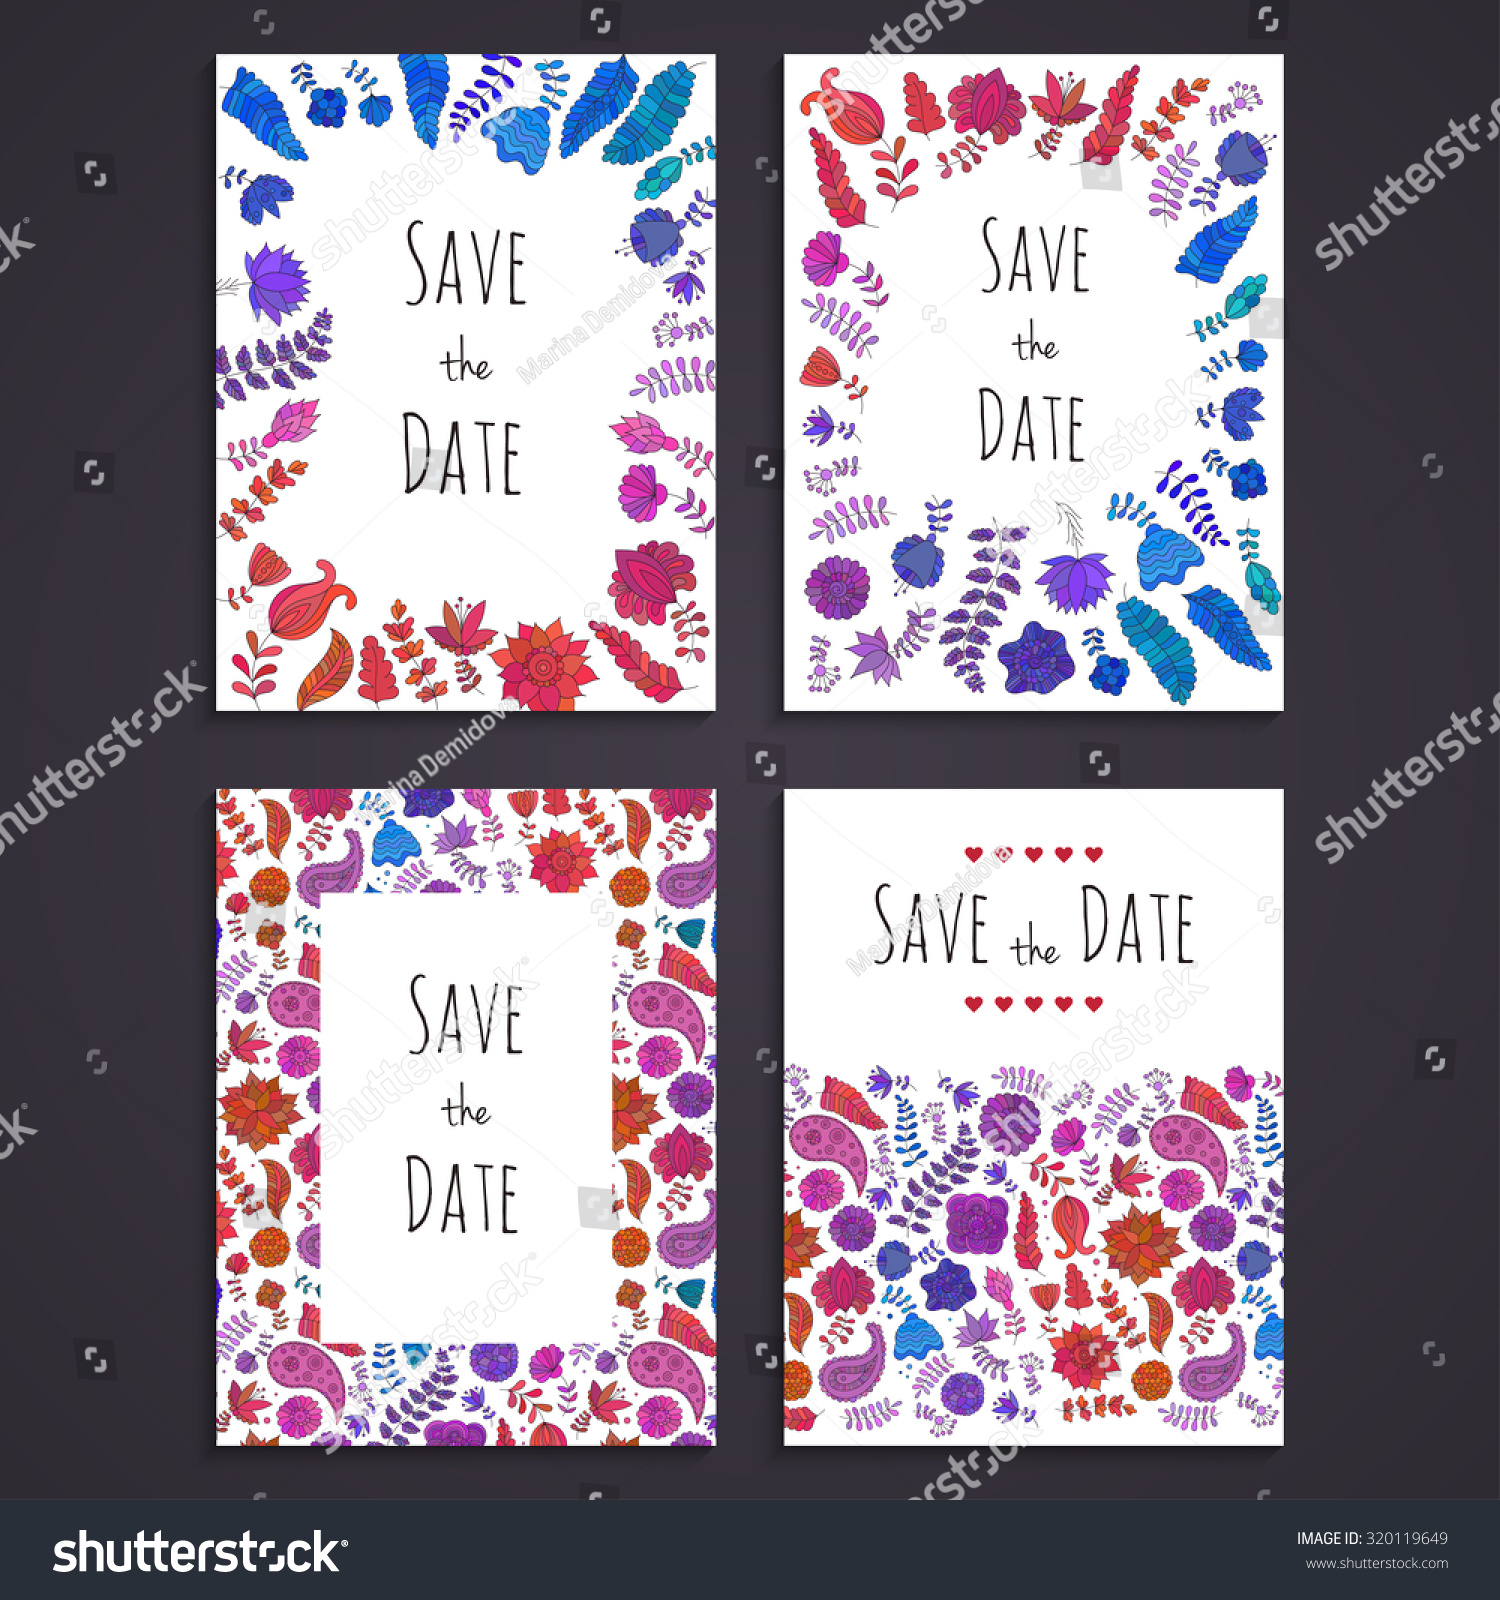 Lovely save the date birthday cards pictures eccleshallfc birthday save the date cards image collections free birthday cards pronofoot35fo Image collections